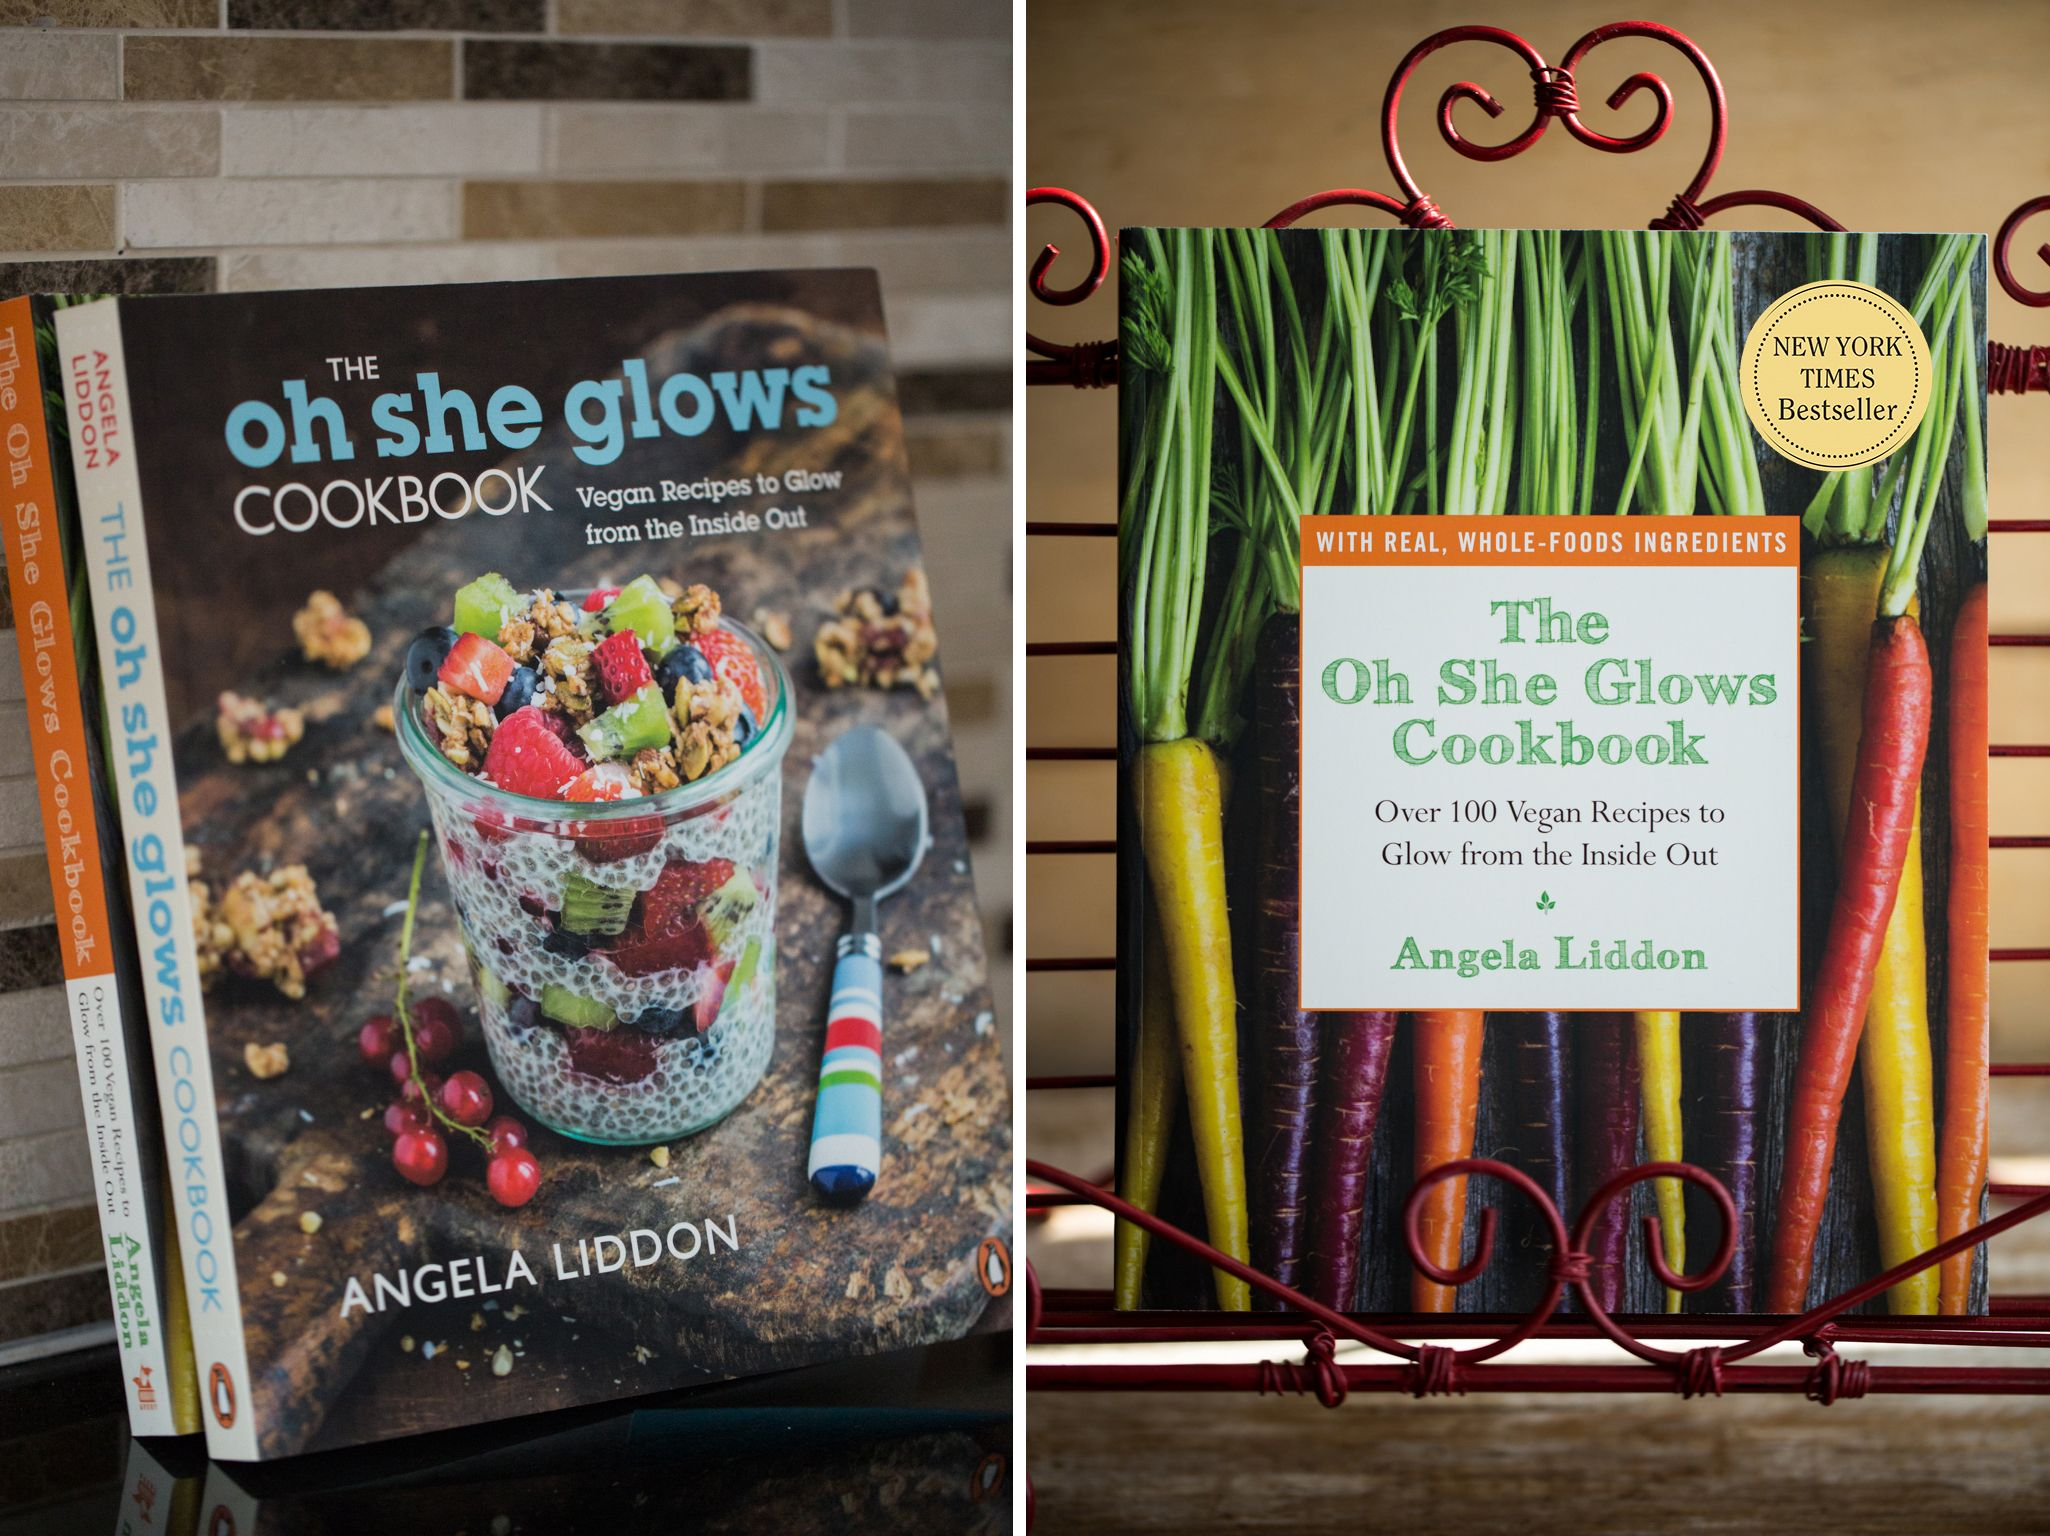 Ohsheglowscookbooknyt 1024x767 the book healthy food pinterest the oh she glows cookbook vegan recipes to glow from the inside out forumfinder Gallery